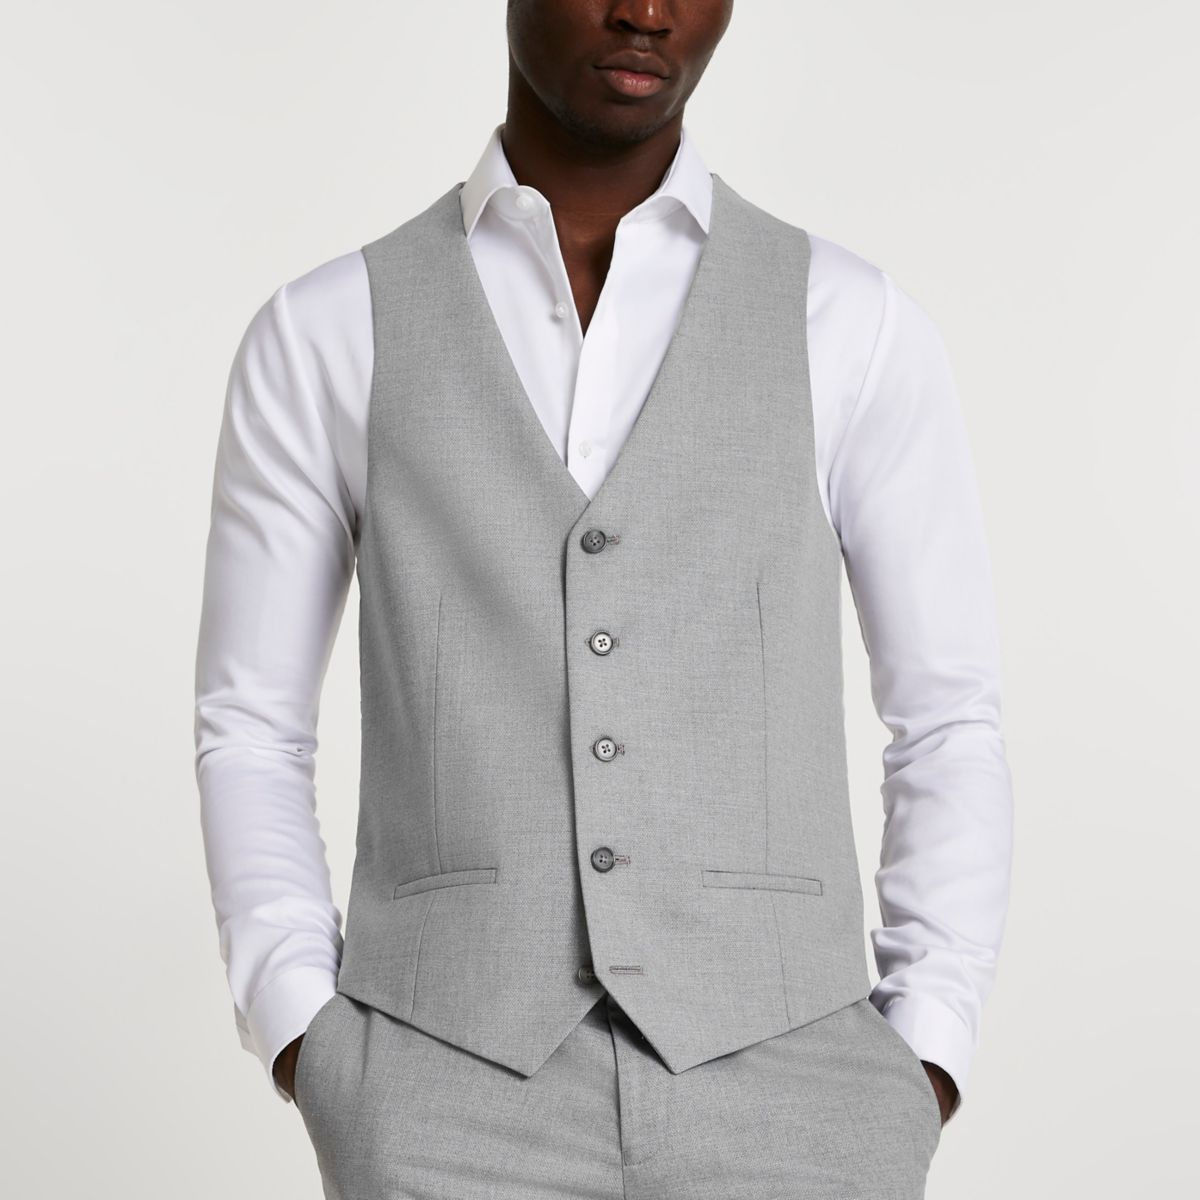 Grey textured suit vest